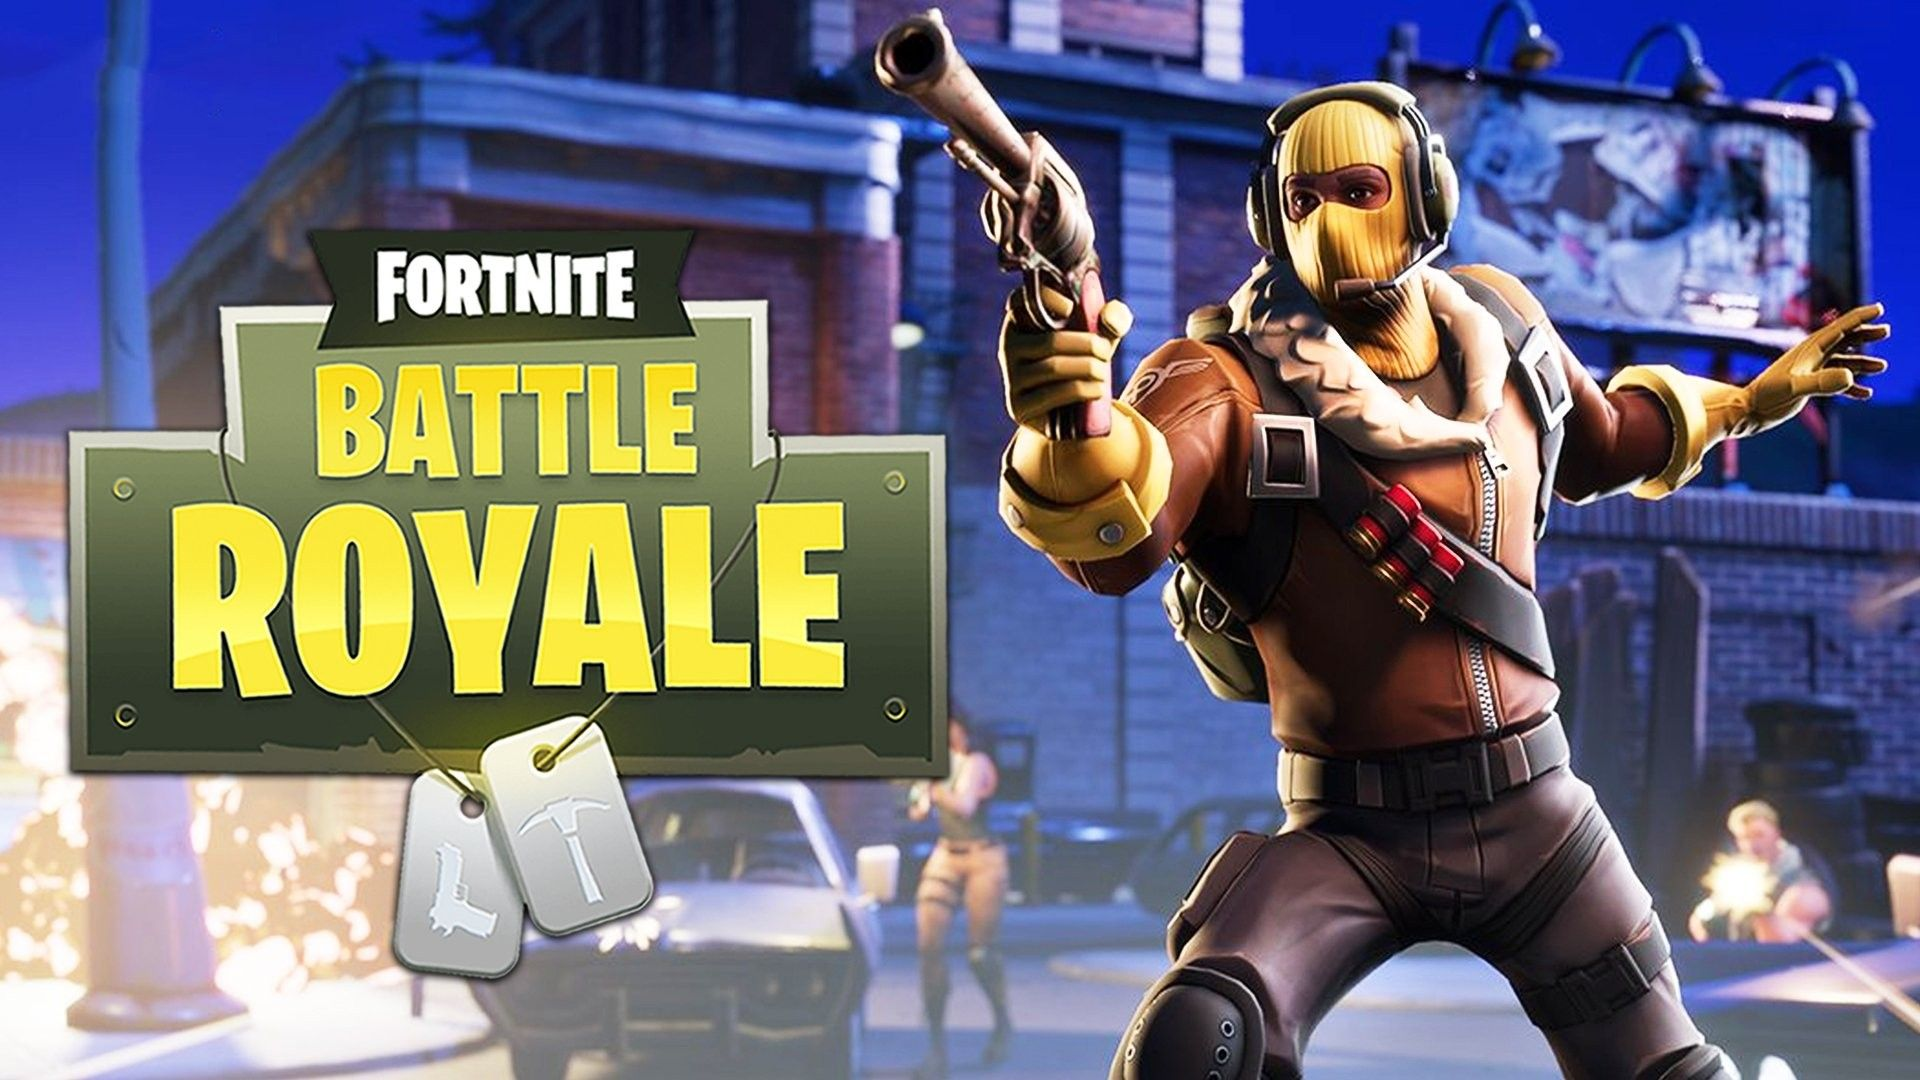 Cool Fortnite Battle Royale Wallpapers Top Free Cool Fortnite Battle Royale Backgrounds Wallpaperaccess